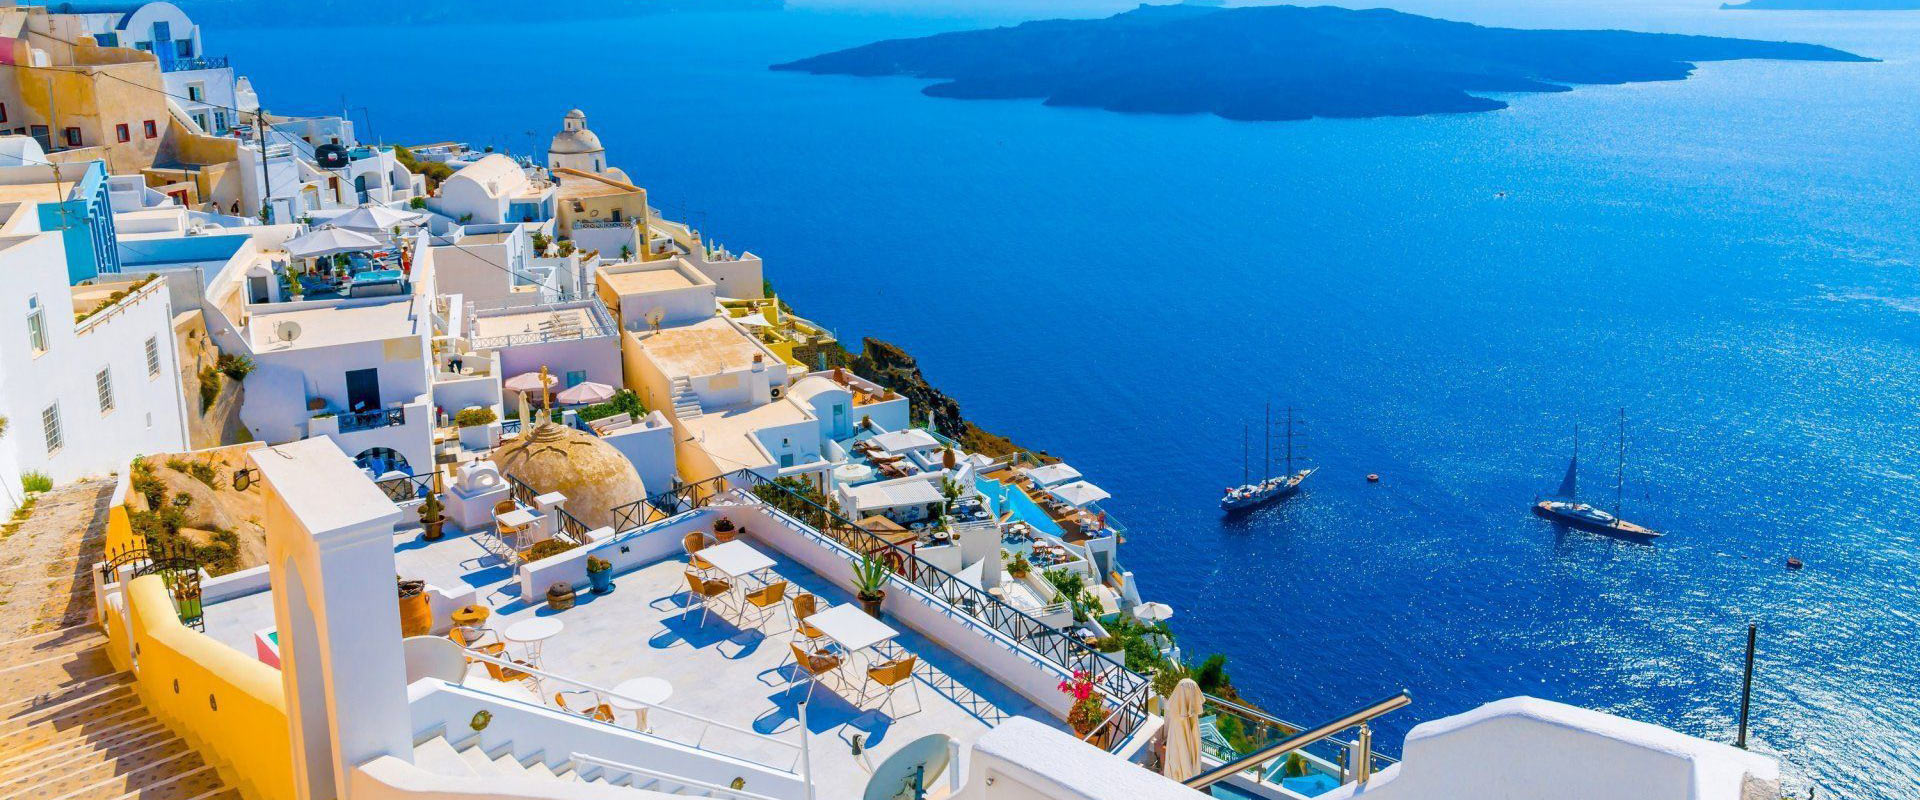 Spend your vacation in Santorini, the most mesmerizing island